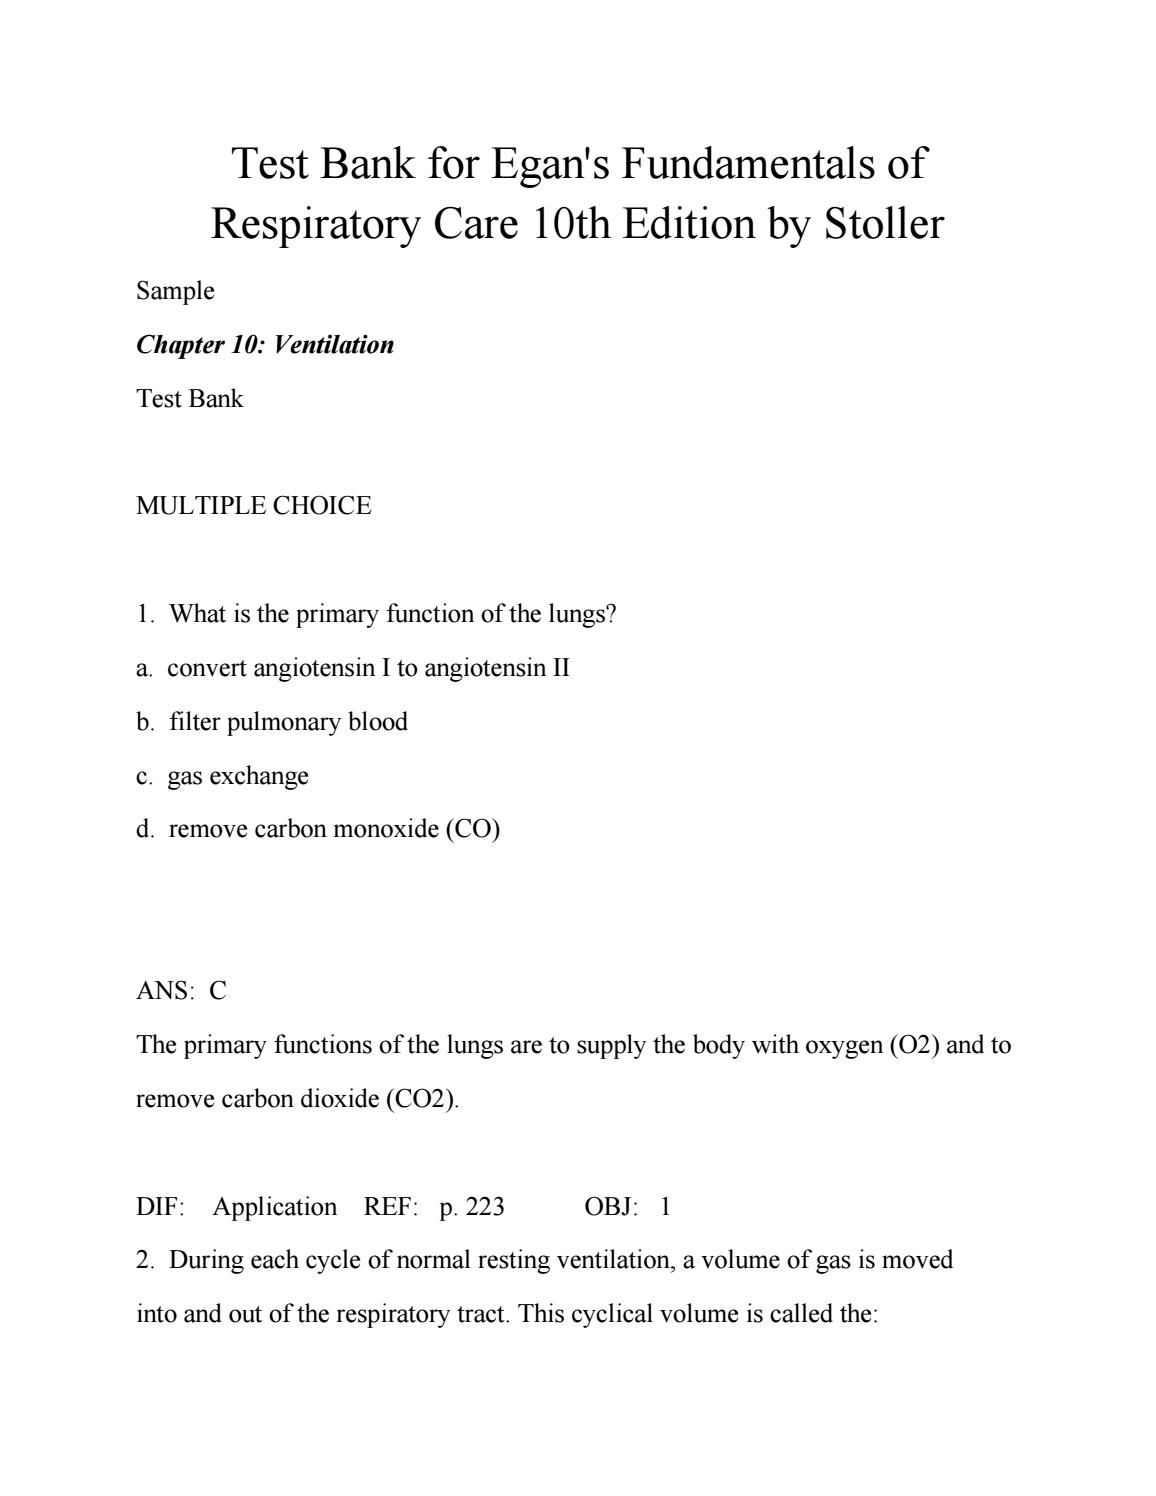 Test bank for egans fundamentals of respiratory care 10th edition by ...